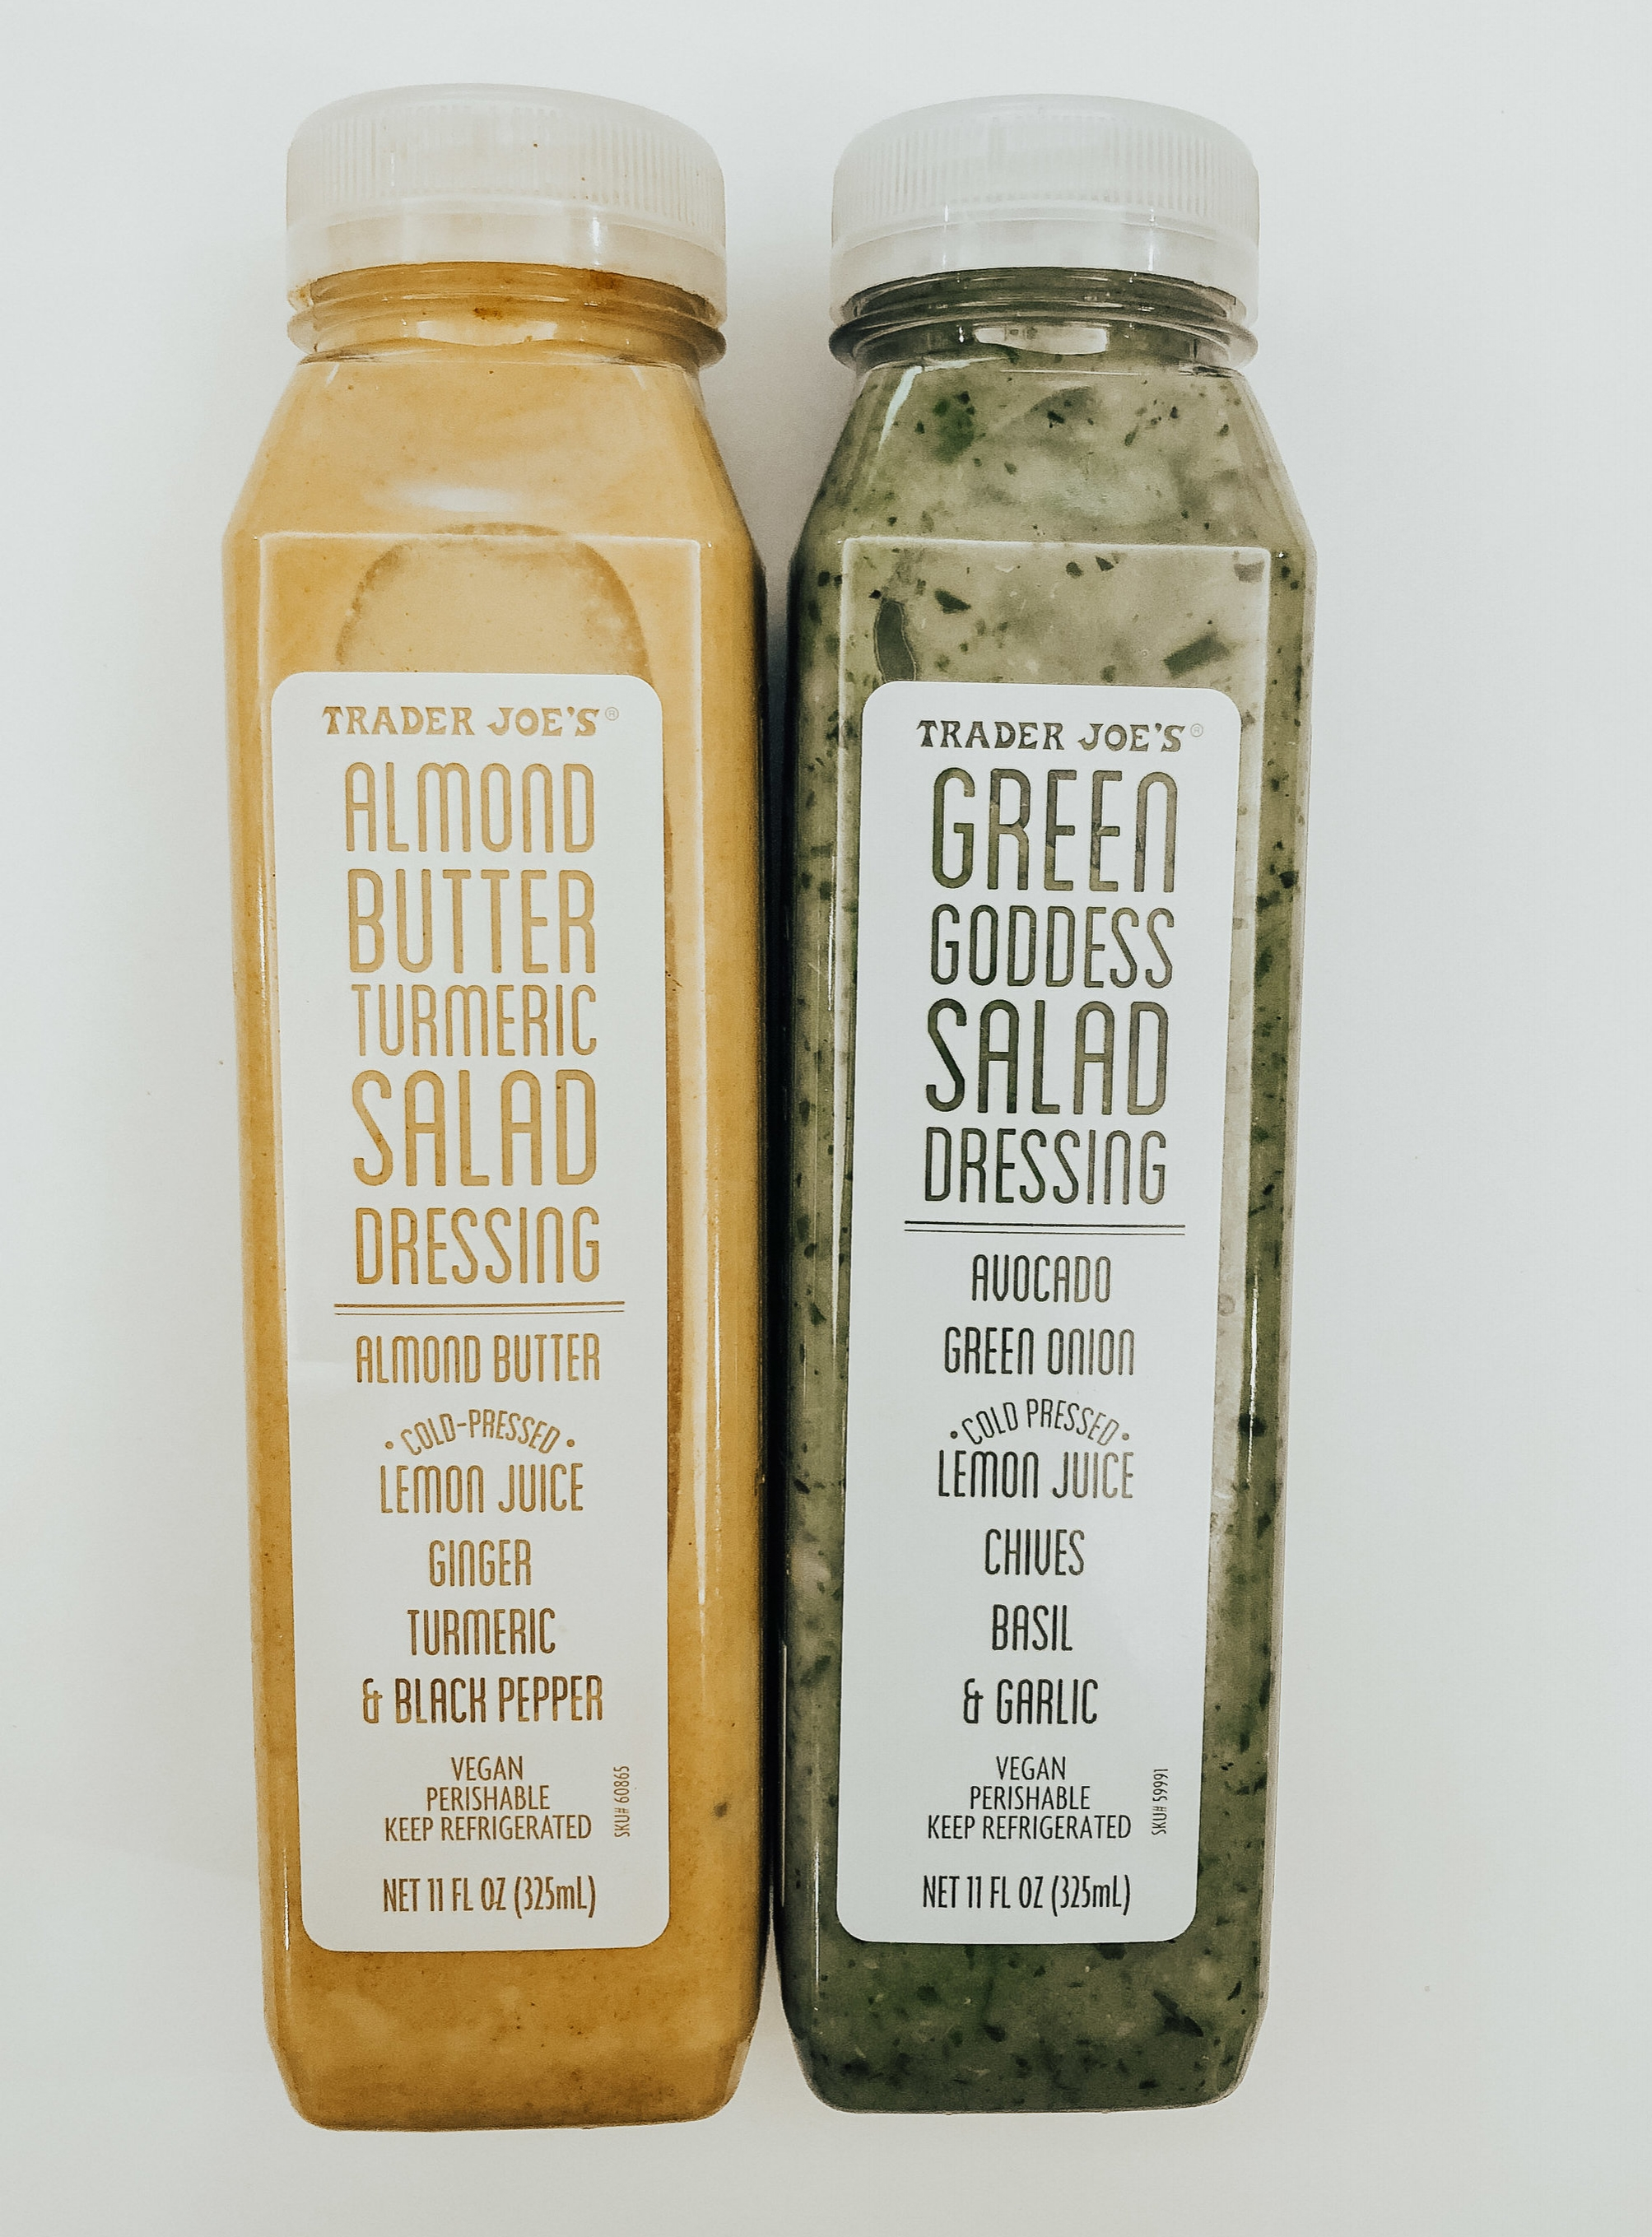 These dressings are so damn good. I'm a hyooge fan of the almond butter turmeric one.